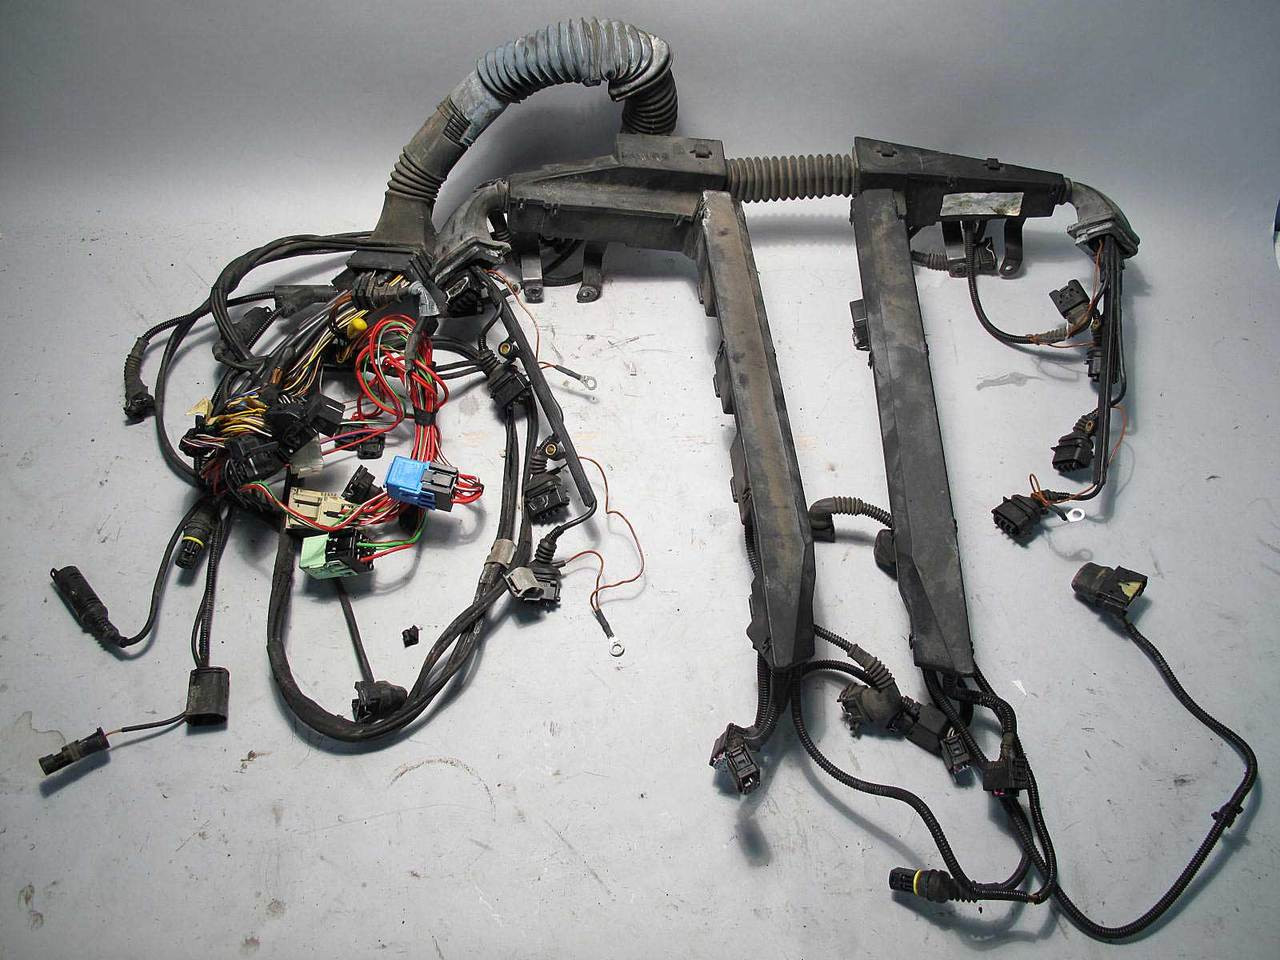 2000 Bmw E39 M5 M S62 Engine Wiring Electrical Harness Complete Wire Uncut Used Img